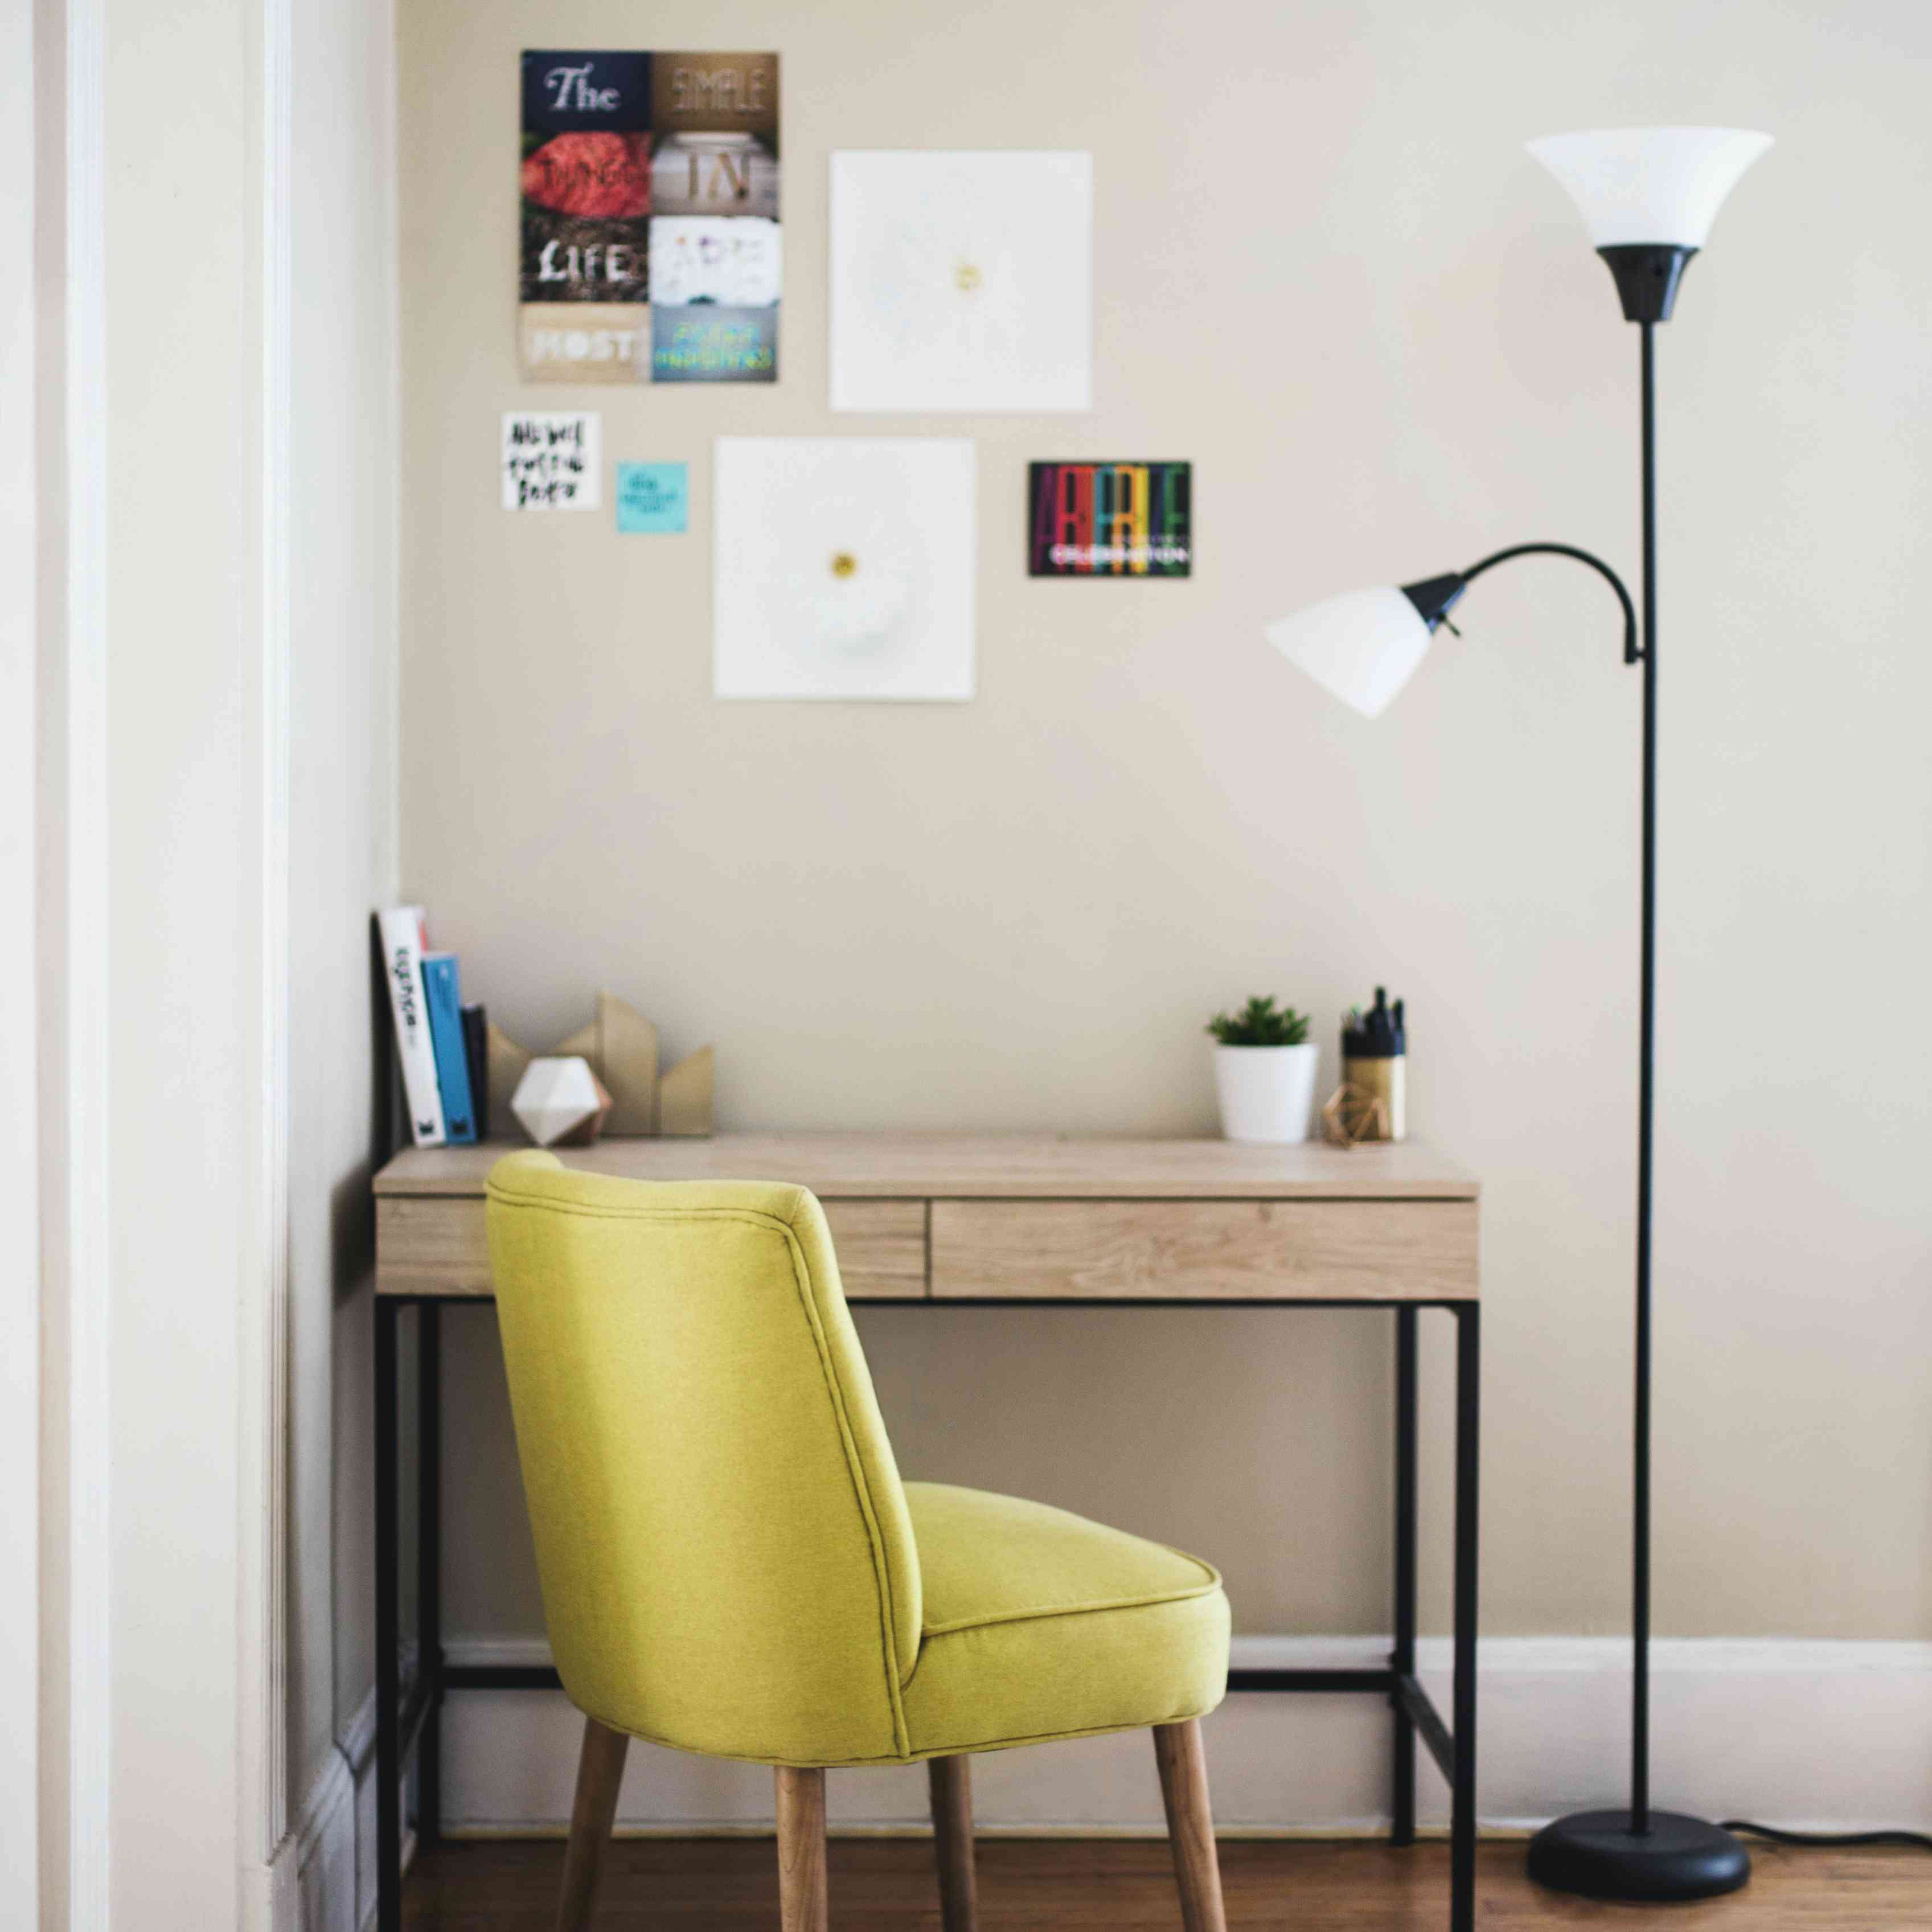 Corner home office space with yellow chair